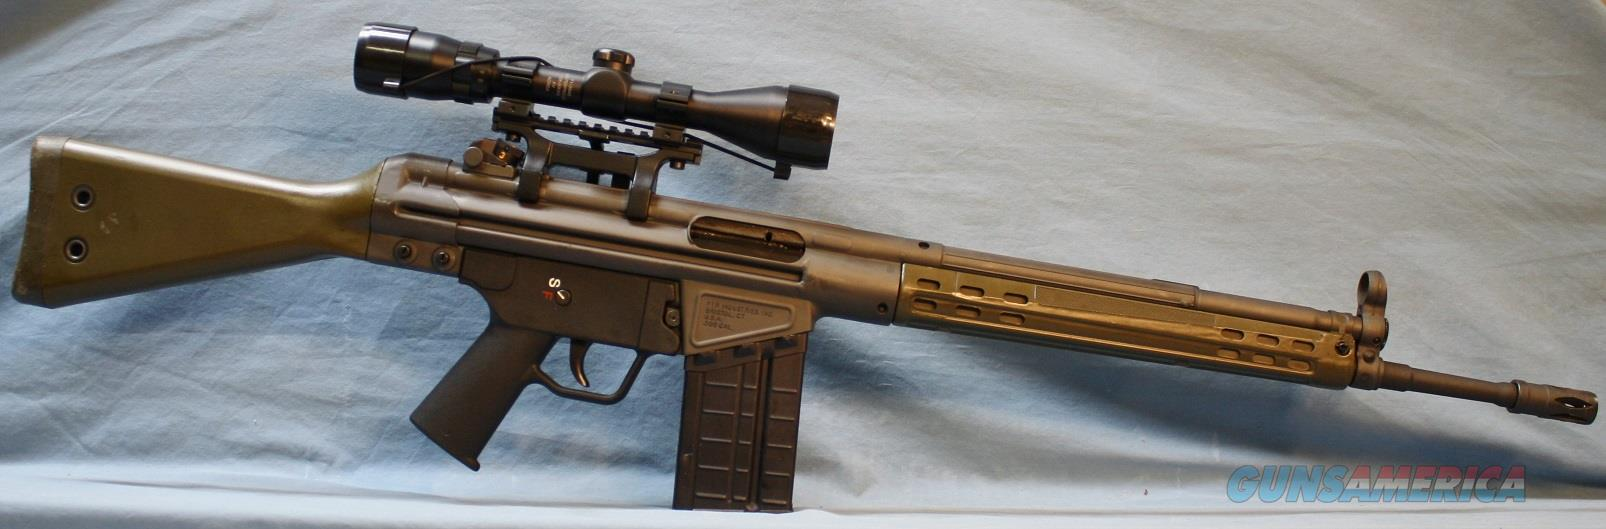 PTR Industries PTR-91GI Semi-Automatic Rifle, .308 Win (7.62 nato)   Guns > Rifles > PTR Rifles